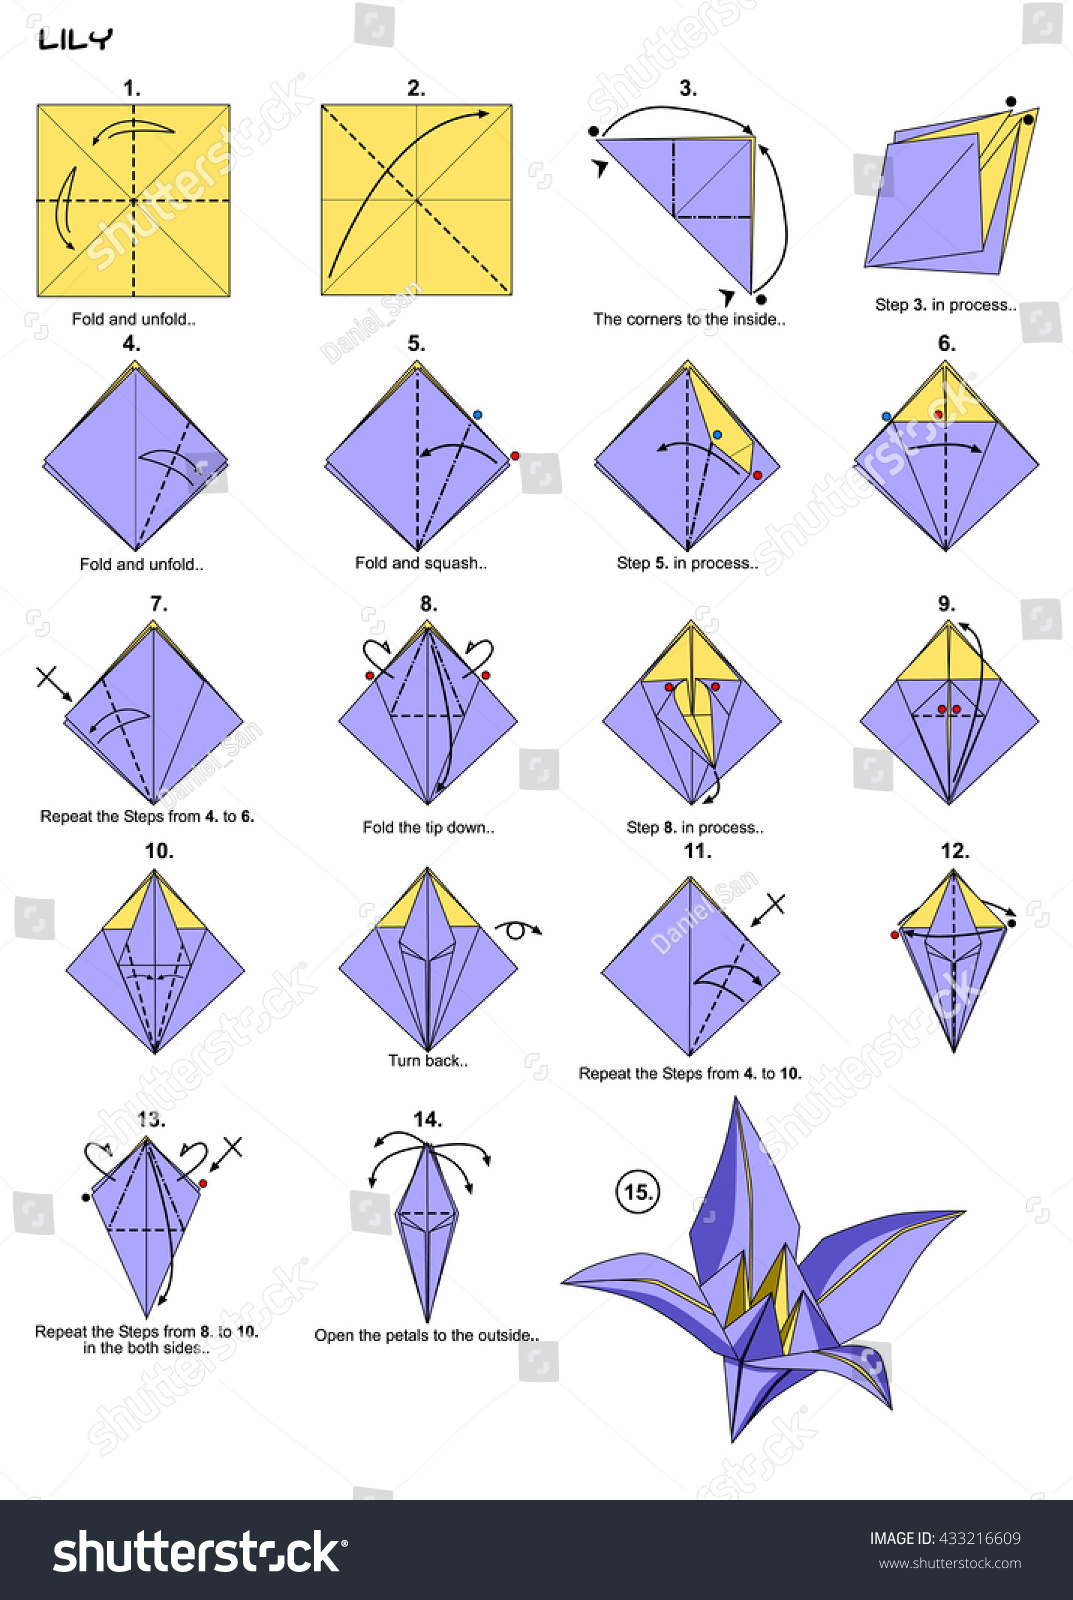 Origami Daylily Flower Folding Instructions Origami Designs Flower